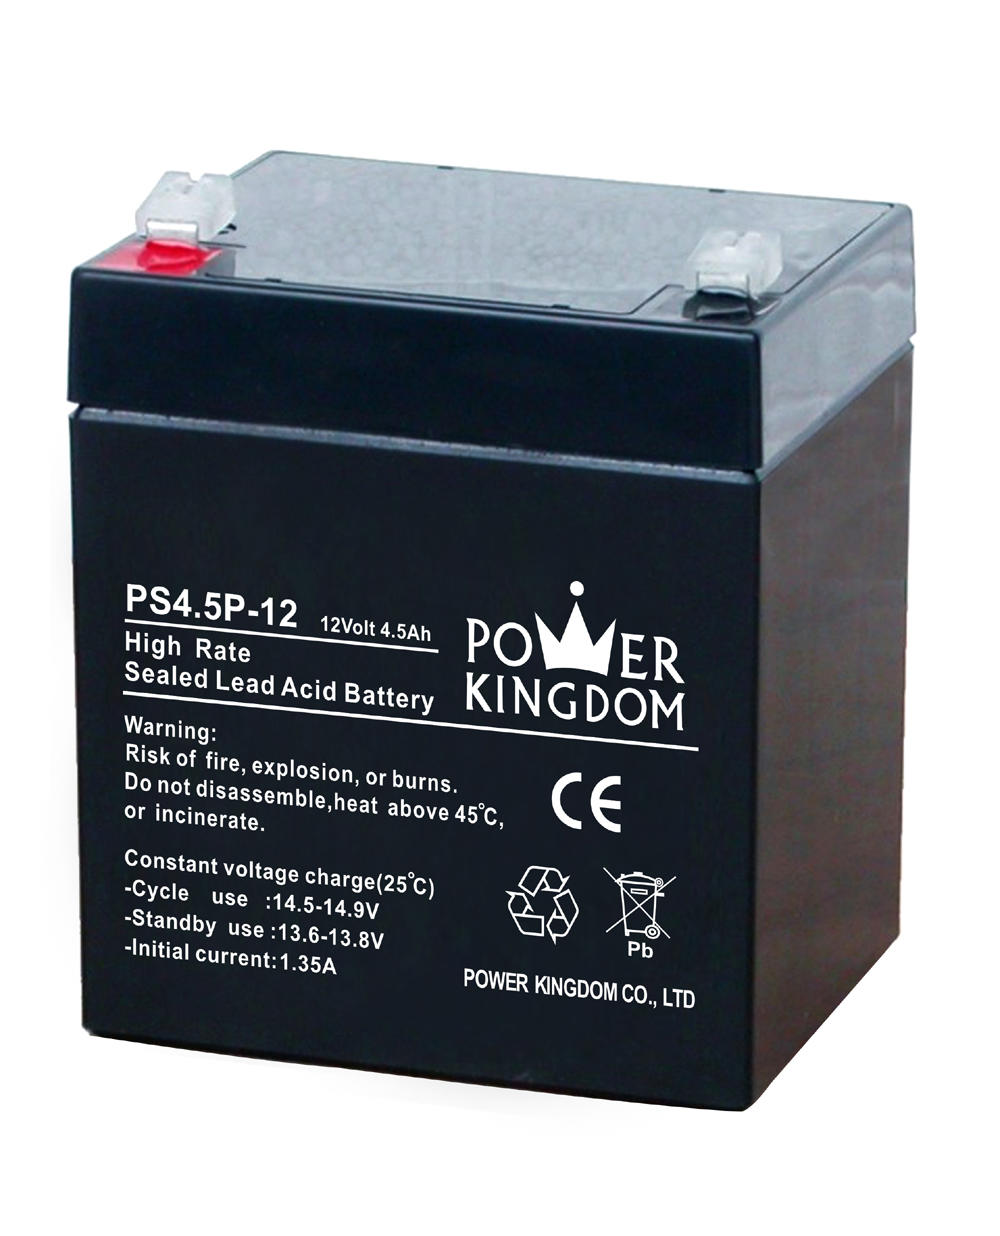 Power Kingdom high rate series 4.5ah 12v sealed lead acid battery